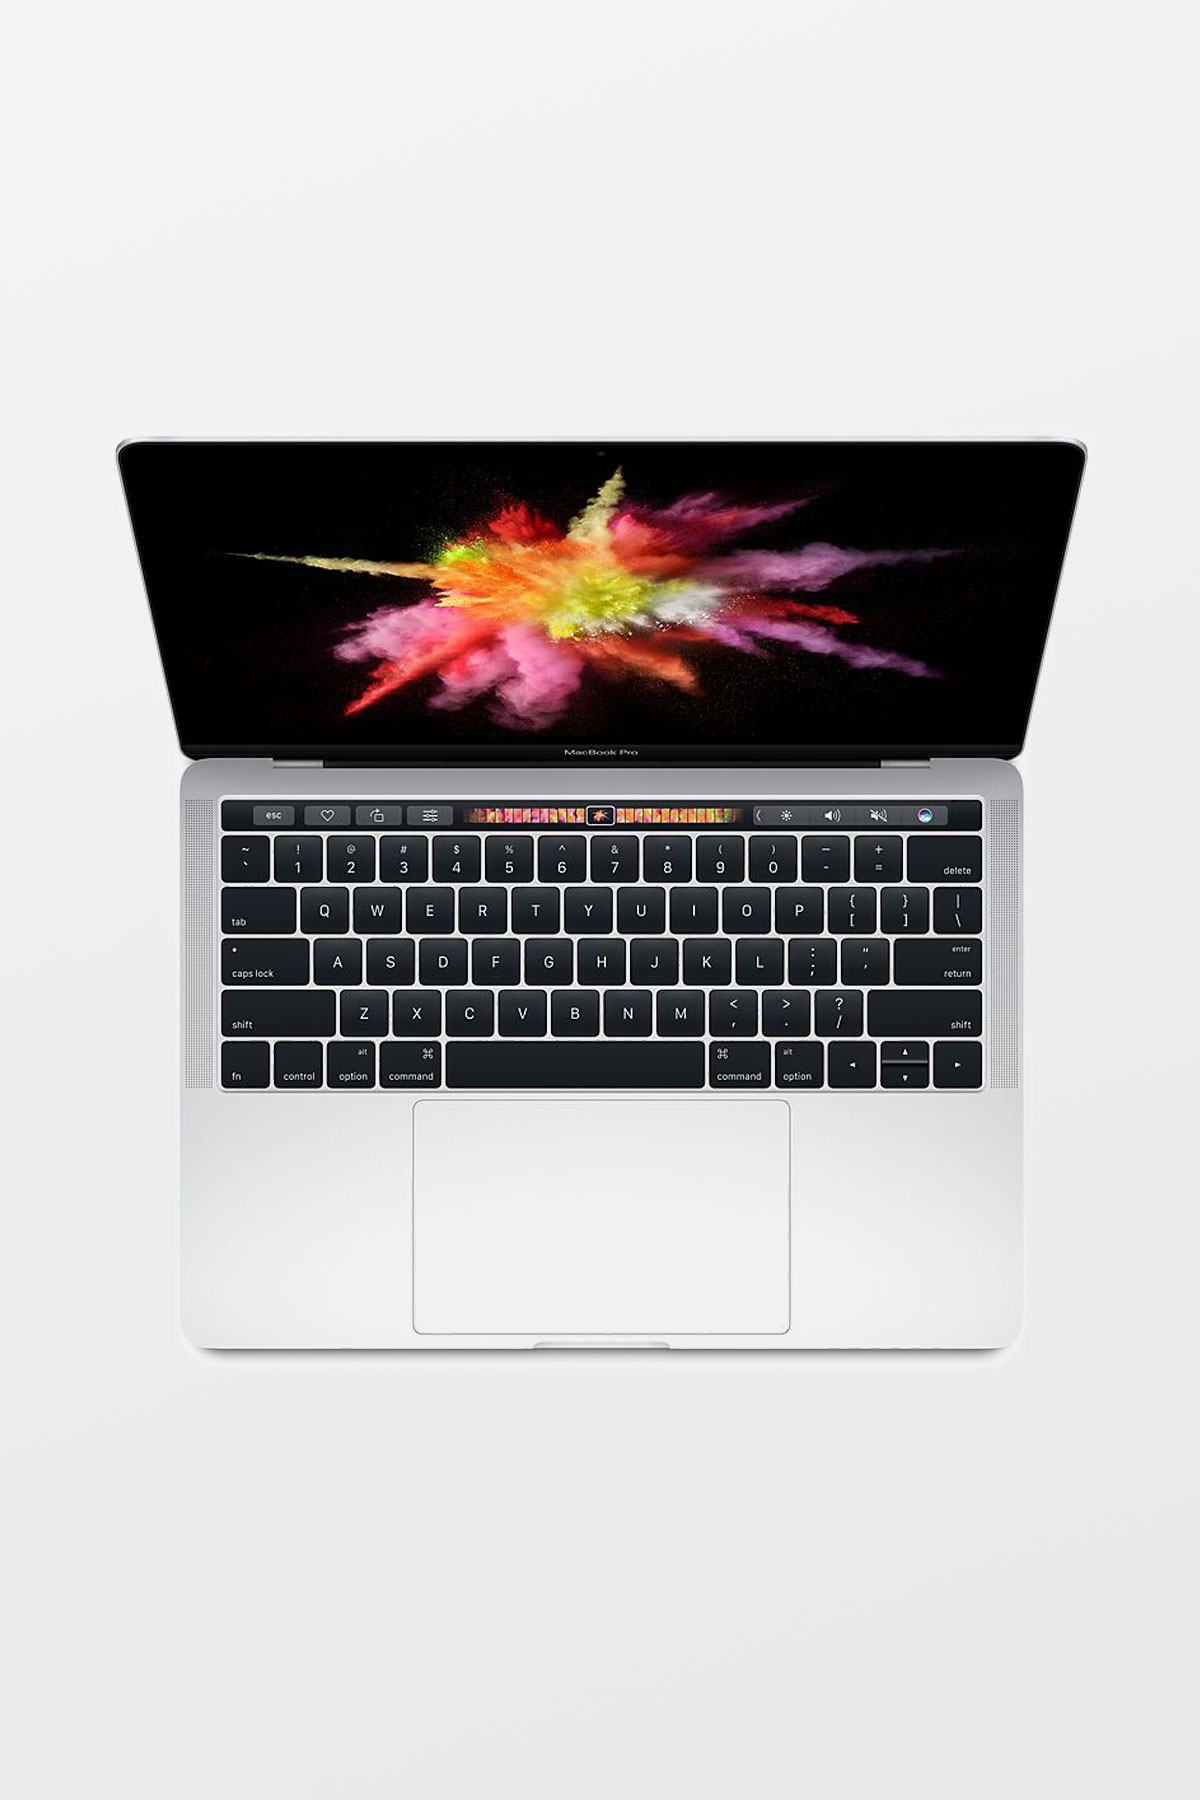 Apple MacBook Pro with Touch Bar 13-inch (3.1GHz i5/8GB/512GB Flash/Intel Iris Plus Graphics 650) - Silver